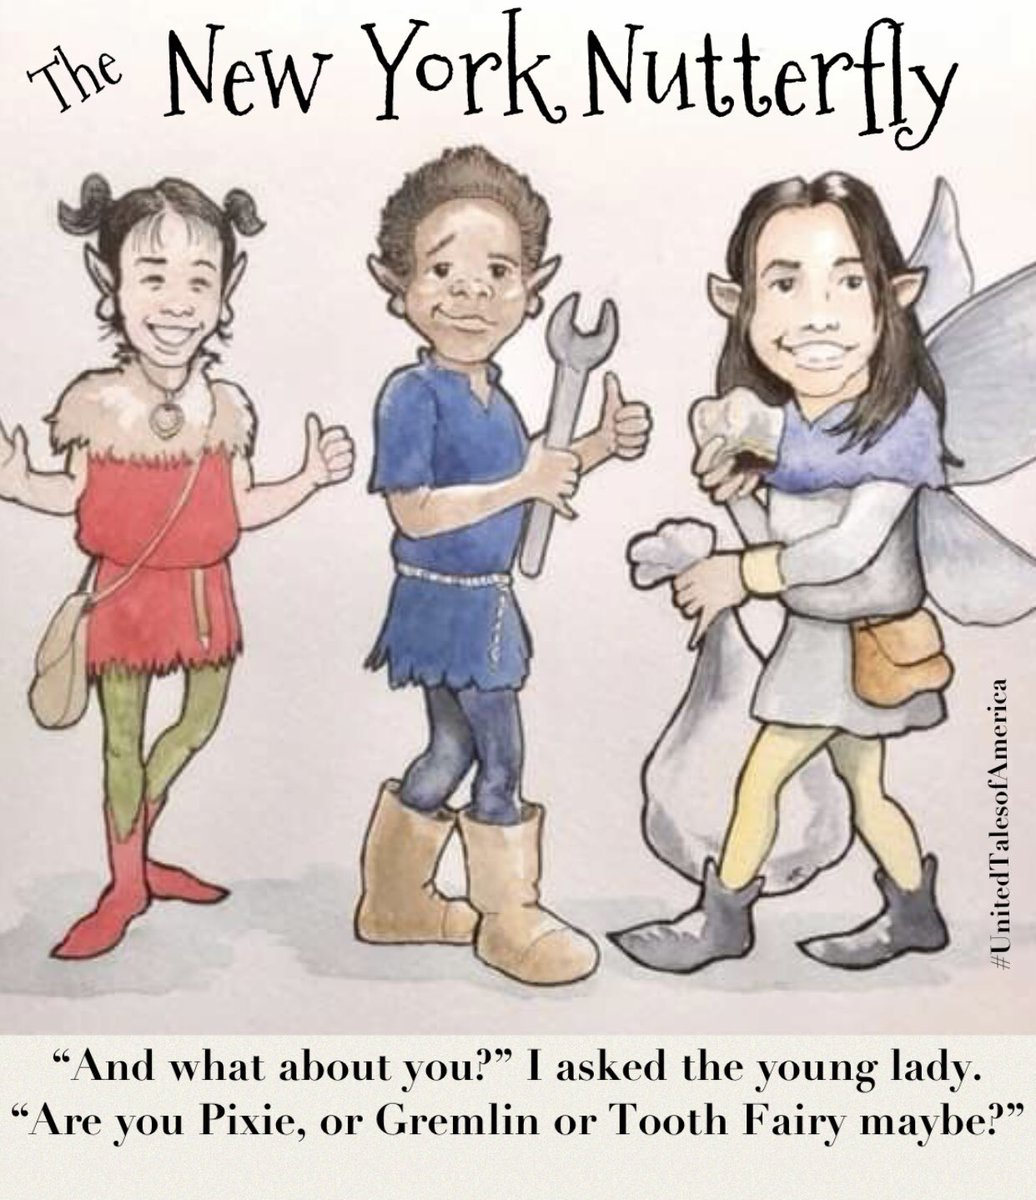 Another gem from Michael Roberts Illustrations - with @TimVMurphy narrating, The Nutterfly is shaping up to be a #VerySpecialStory  in #NewYork  #celebratingamerica #UnitedStates #unitedtales  #celebratingdiversity #embracingchange #everykindofpeople